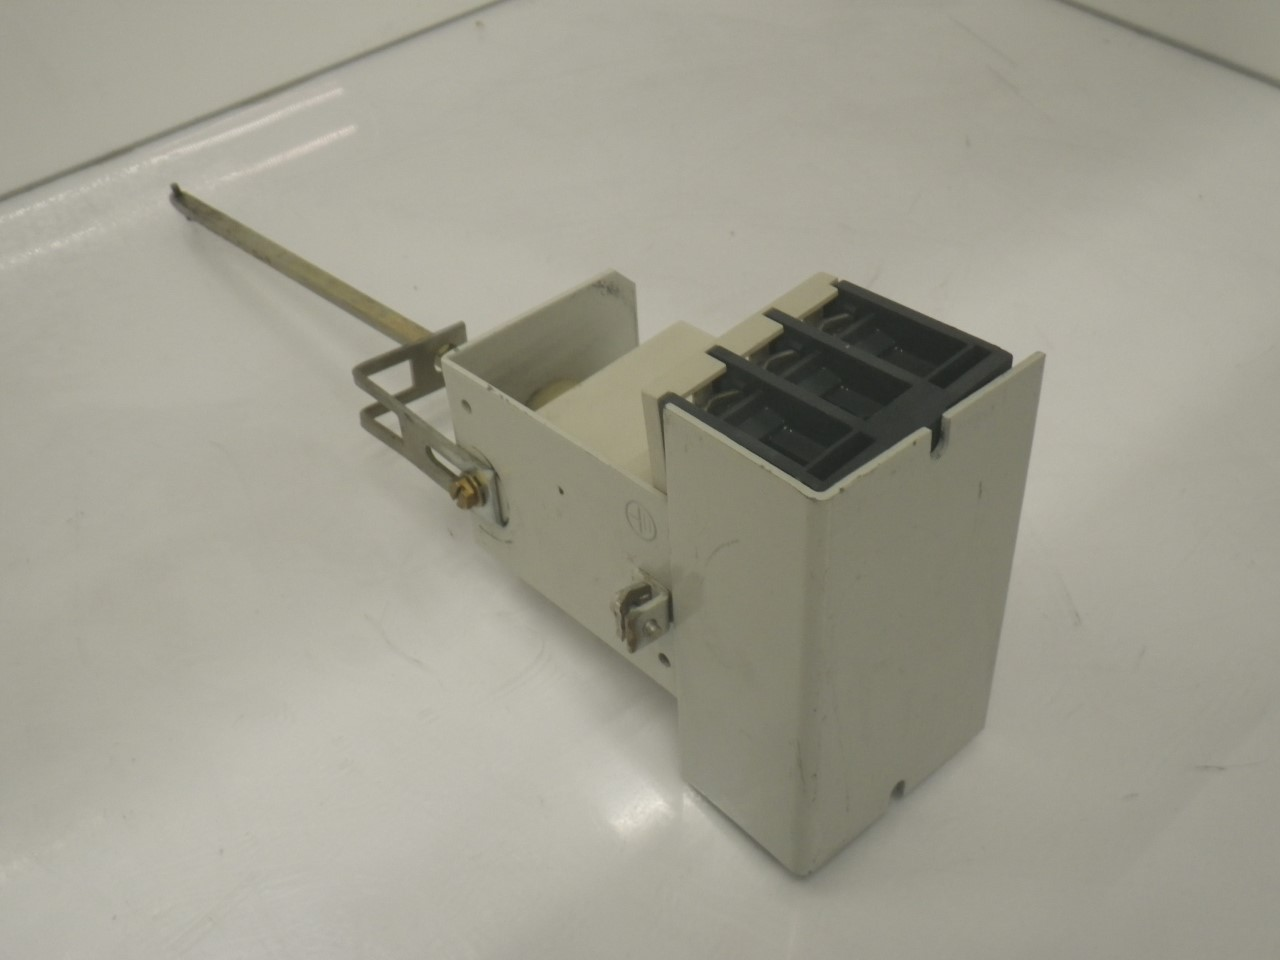 IMGP68893VE3-000-2PA00Siemens 3ve3-000-2pa00 Starter Protector 22-32a (Used Tested) (7)